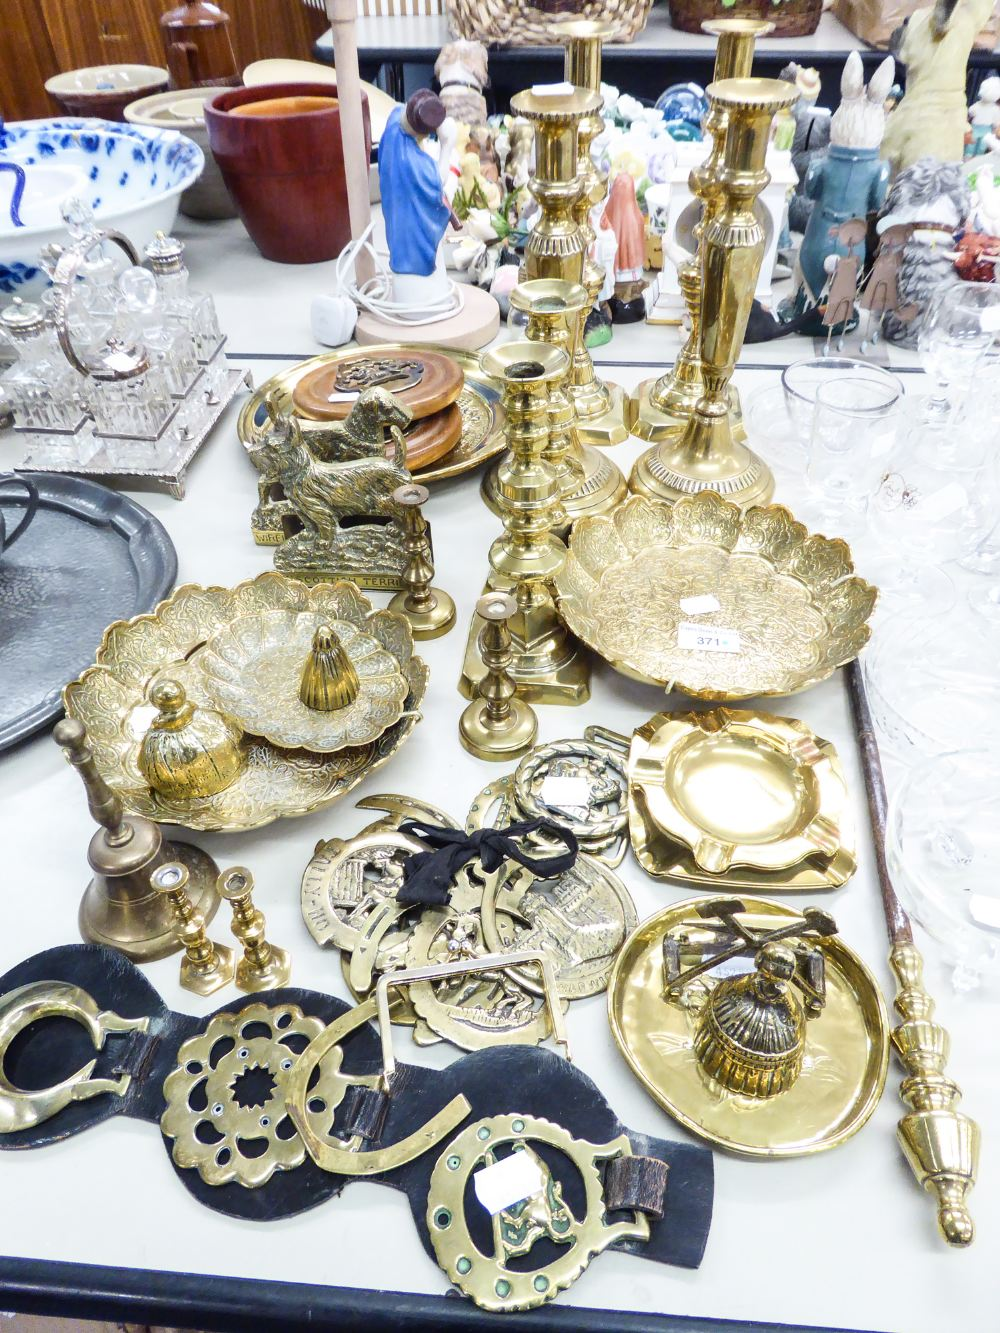 Lot 371 - BRASS WARES TO INCLUDE; FIVE PAIRS OF CANDLESTICKS, HORSE BRASSES, ASHTRAYS, WALL PLAQUES, TABLE